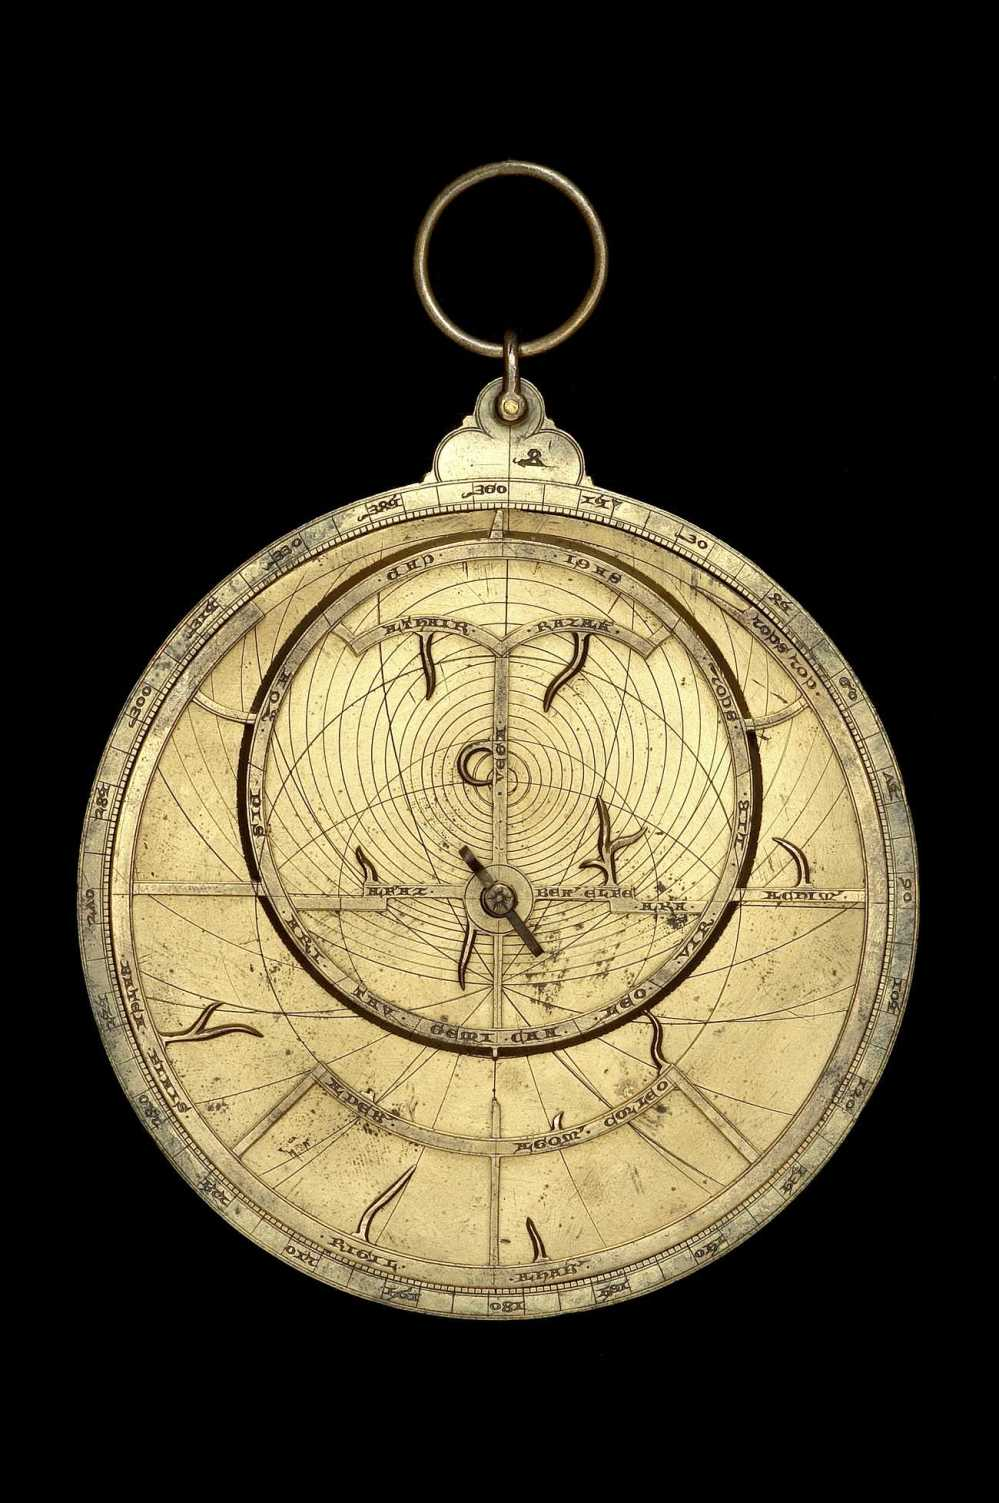 preview image for Late Gothic Astrolabe, French?, c. 1400?